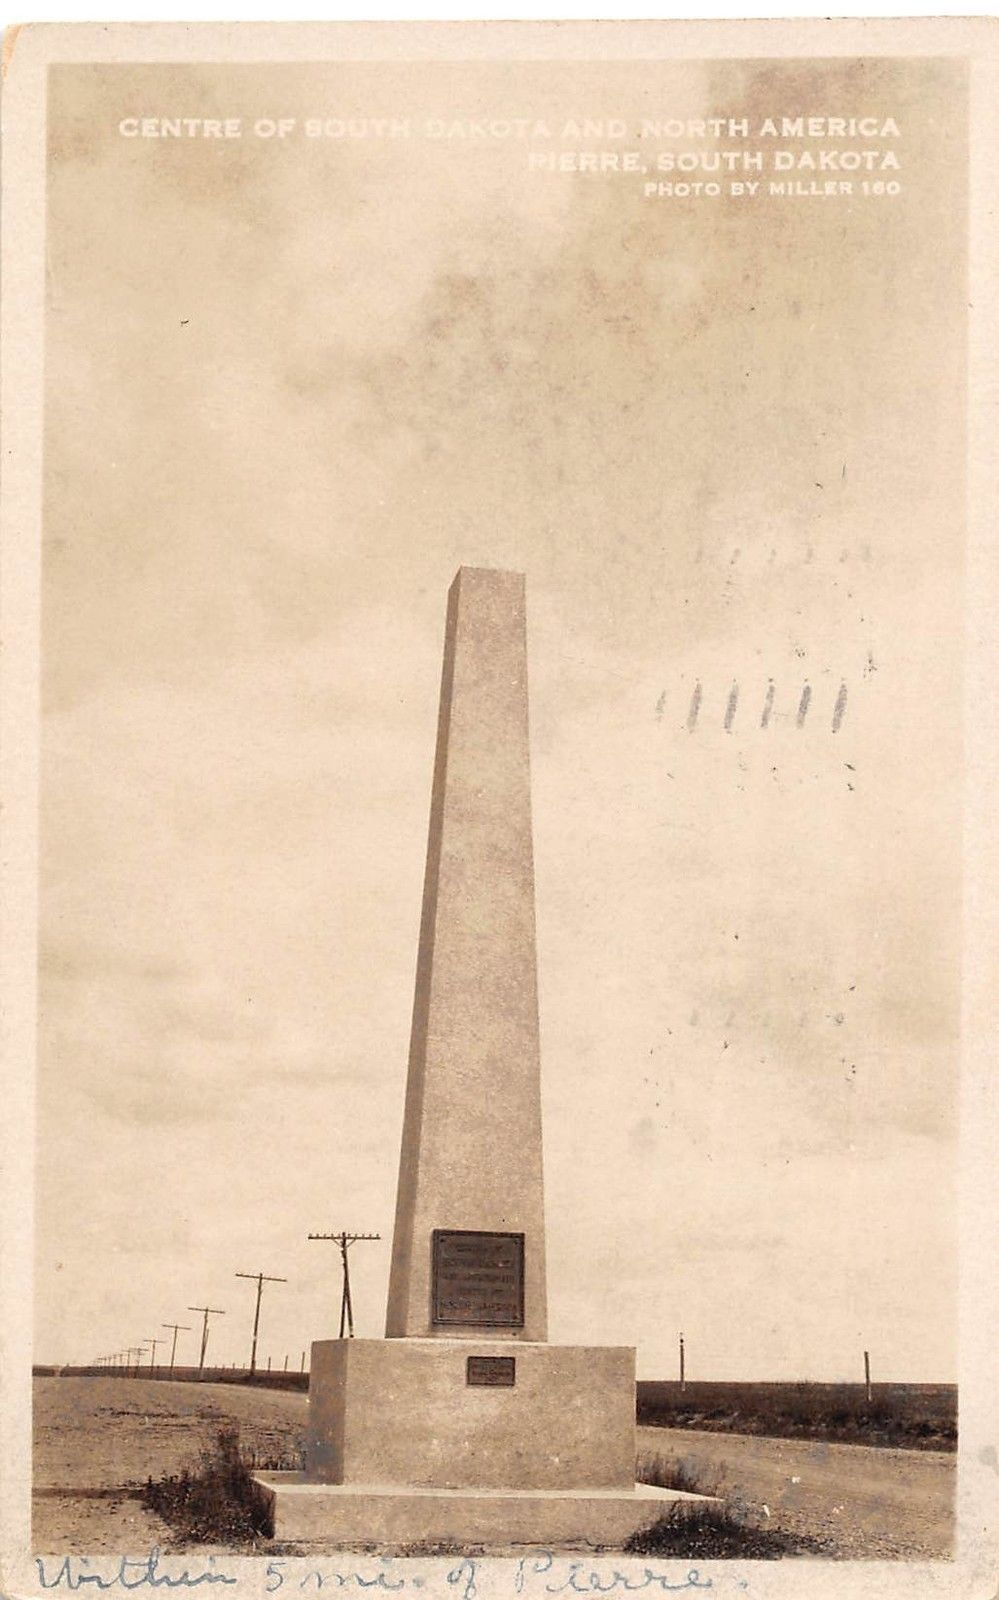 A 1927 picture postcard shows the original monument in the center of the road.